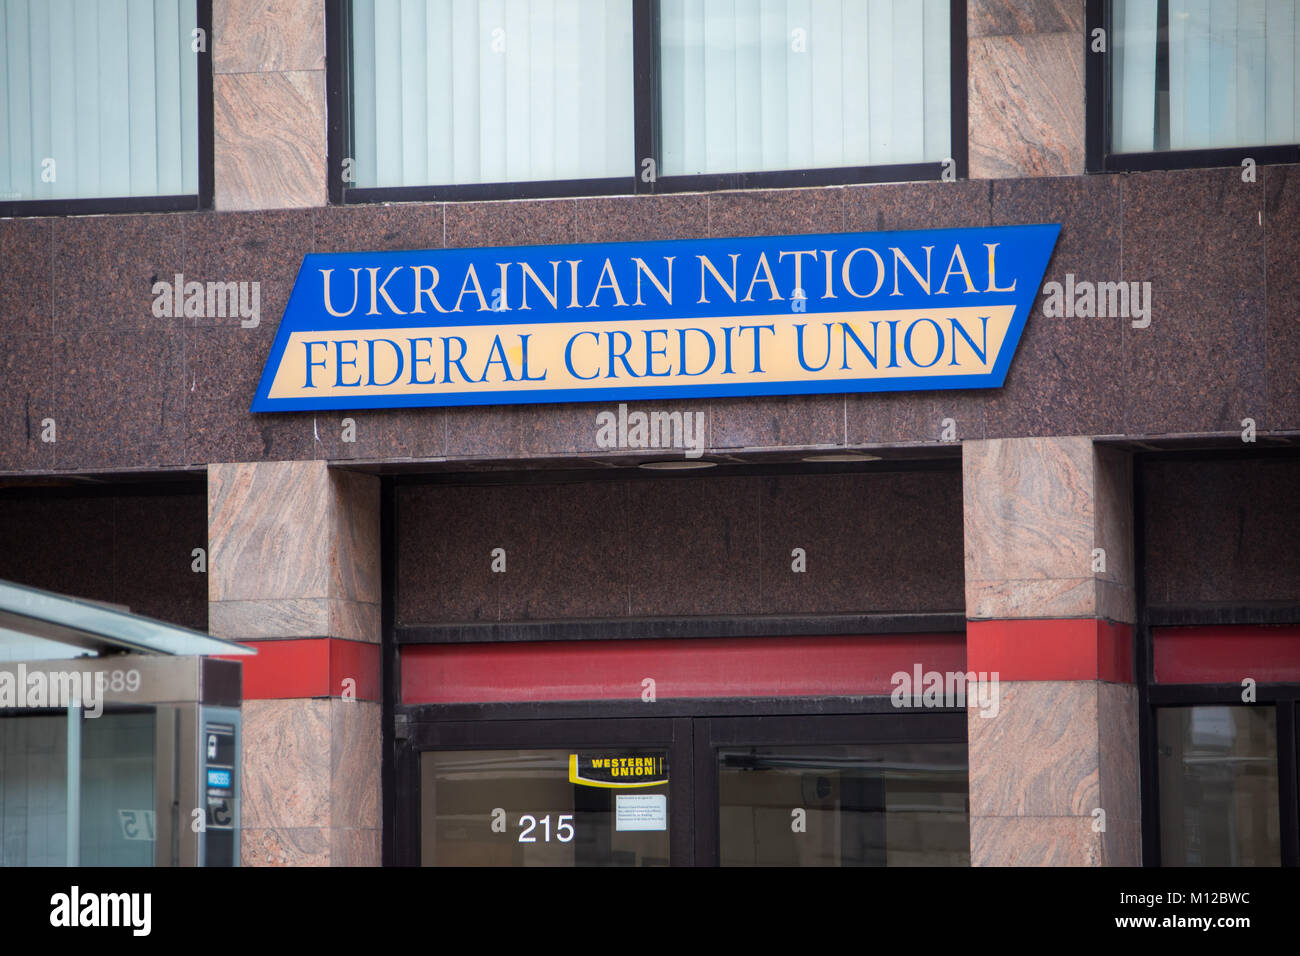 Ukranian National Fedral Credit Union, East Village, Manhattan, New York City - Stock Image